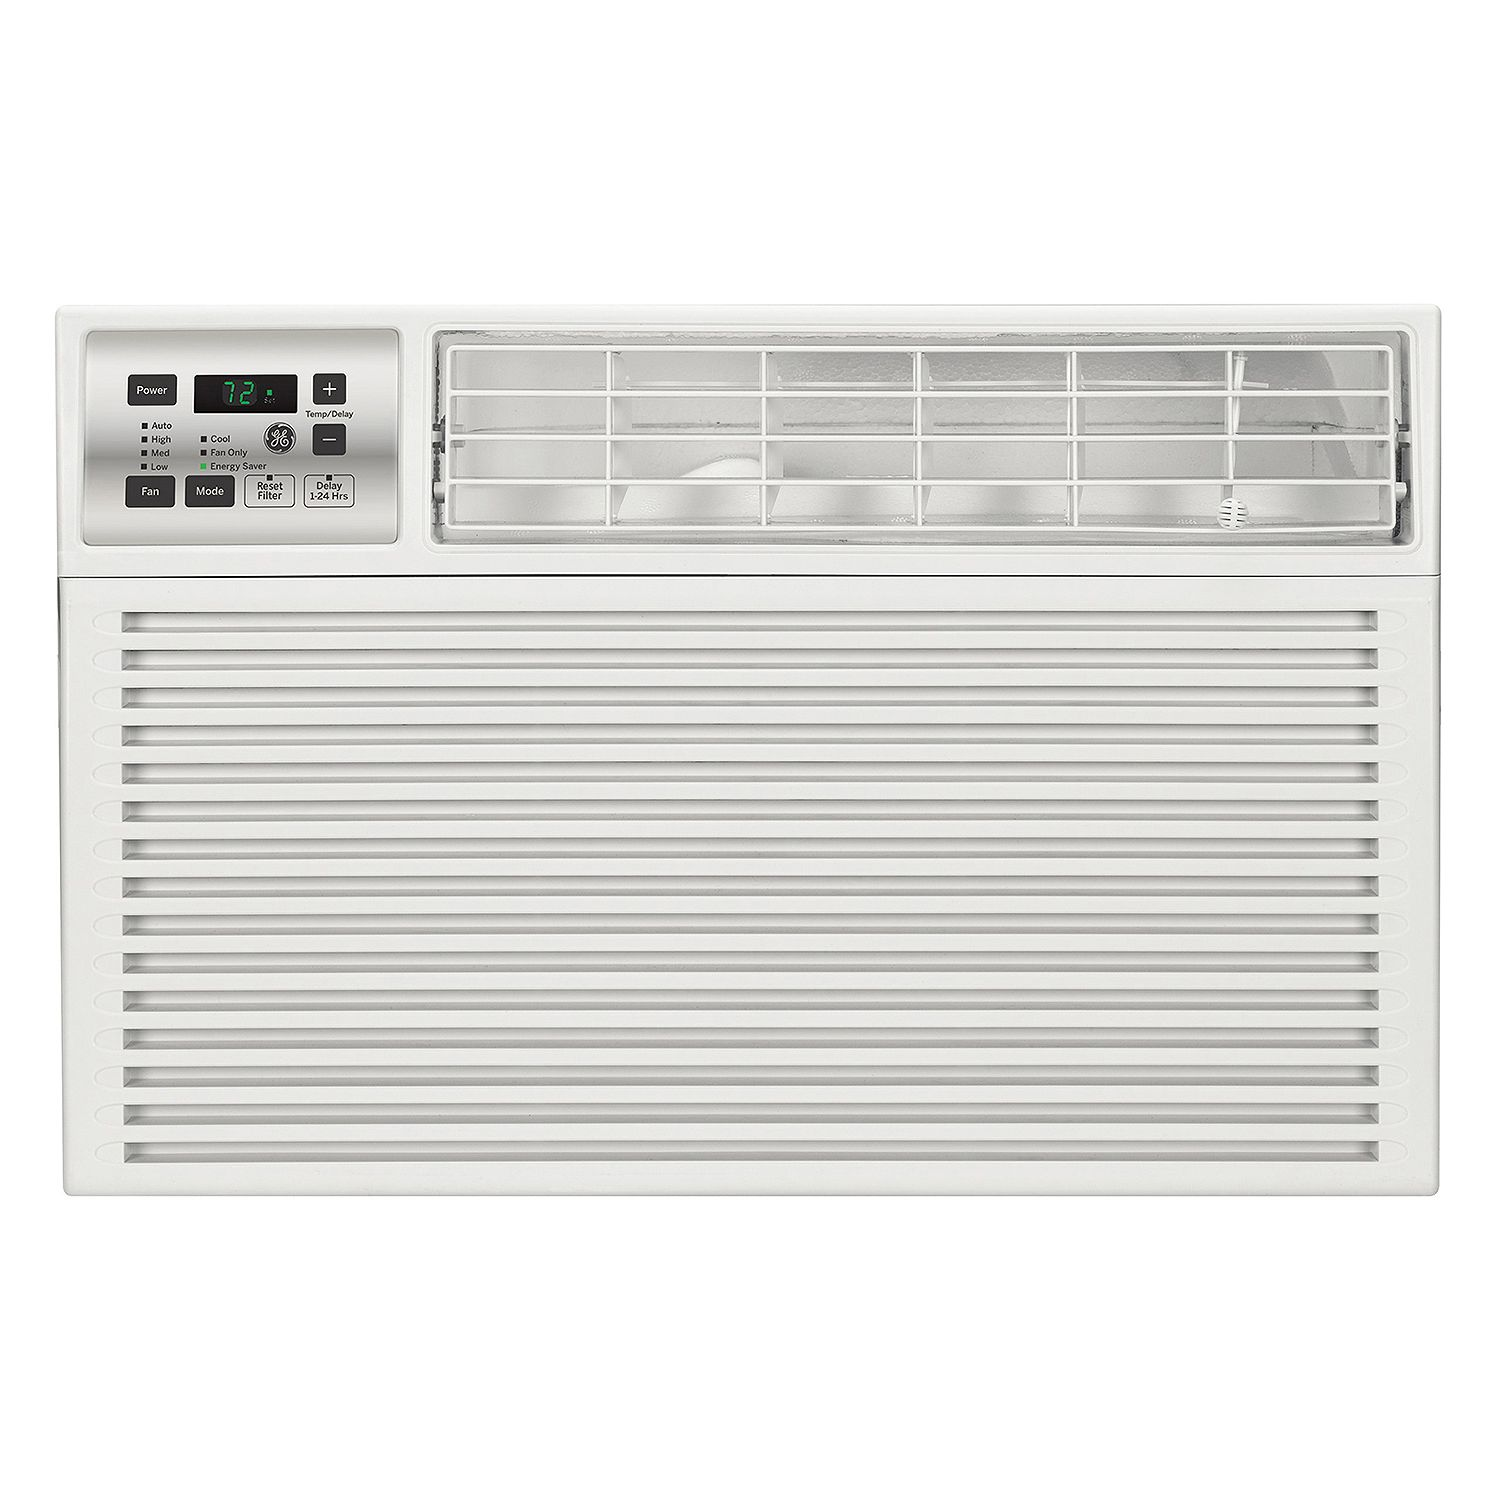 GE 6,150 BTU Energy Star Room Air Conditioner - 115 Volt